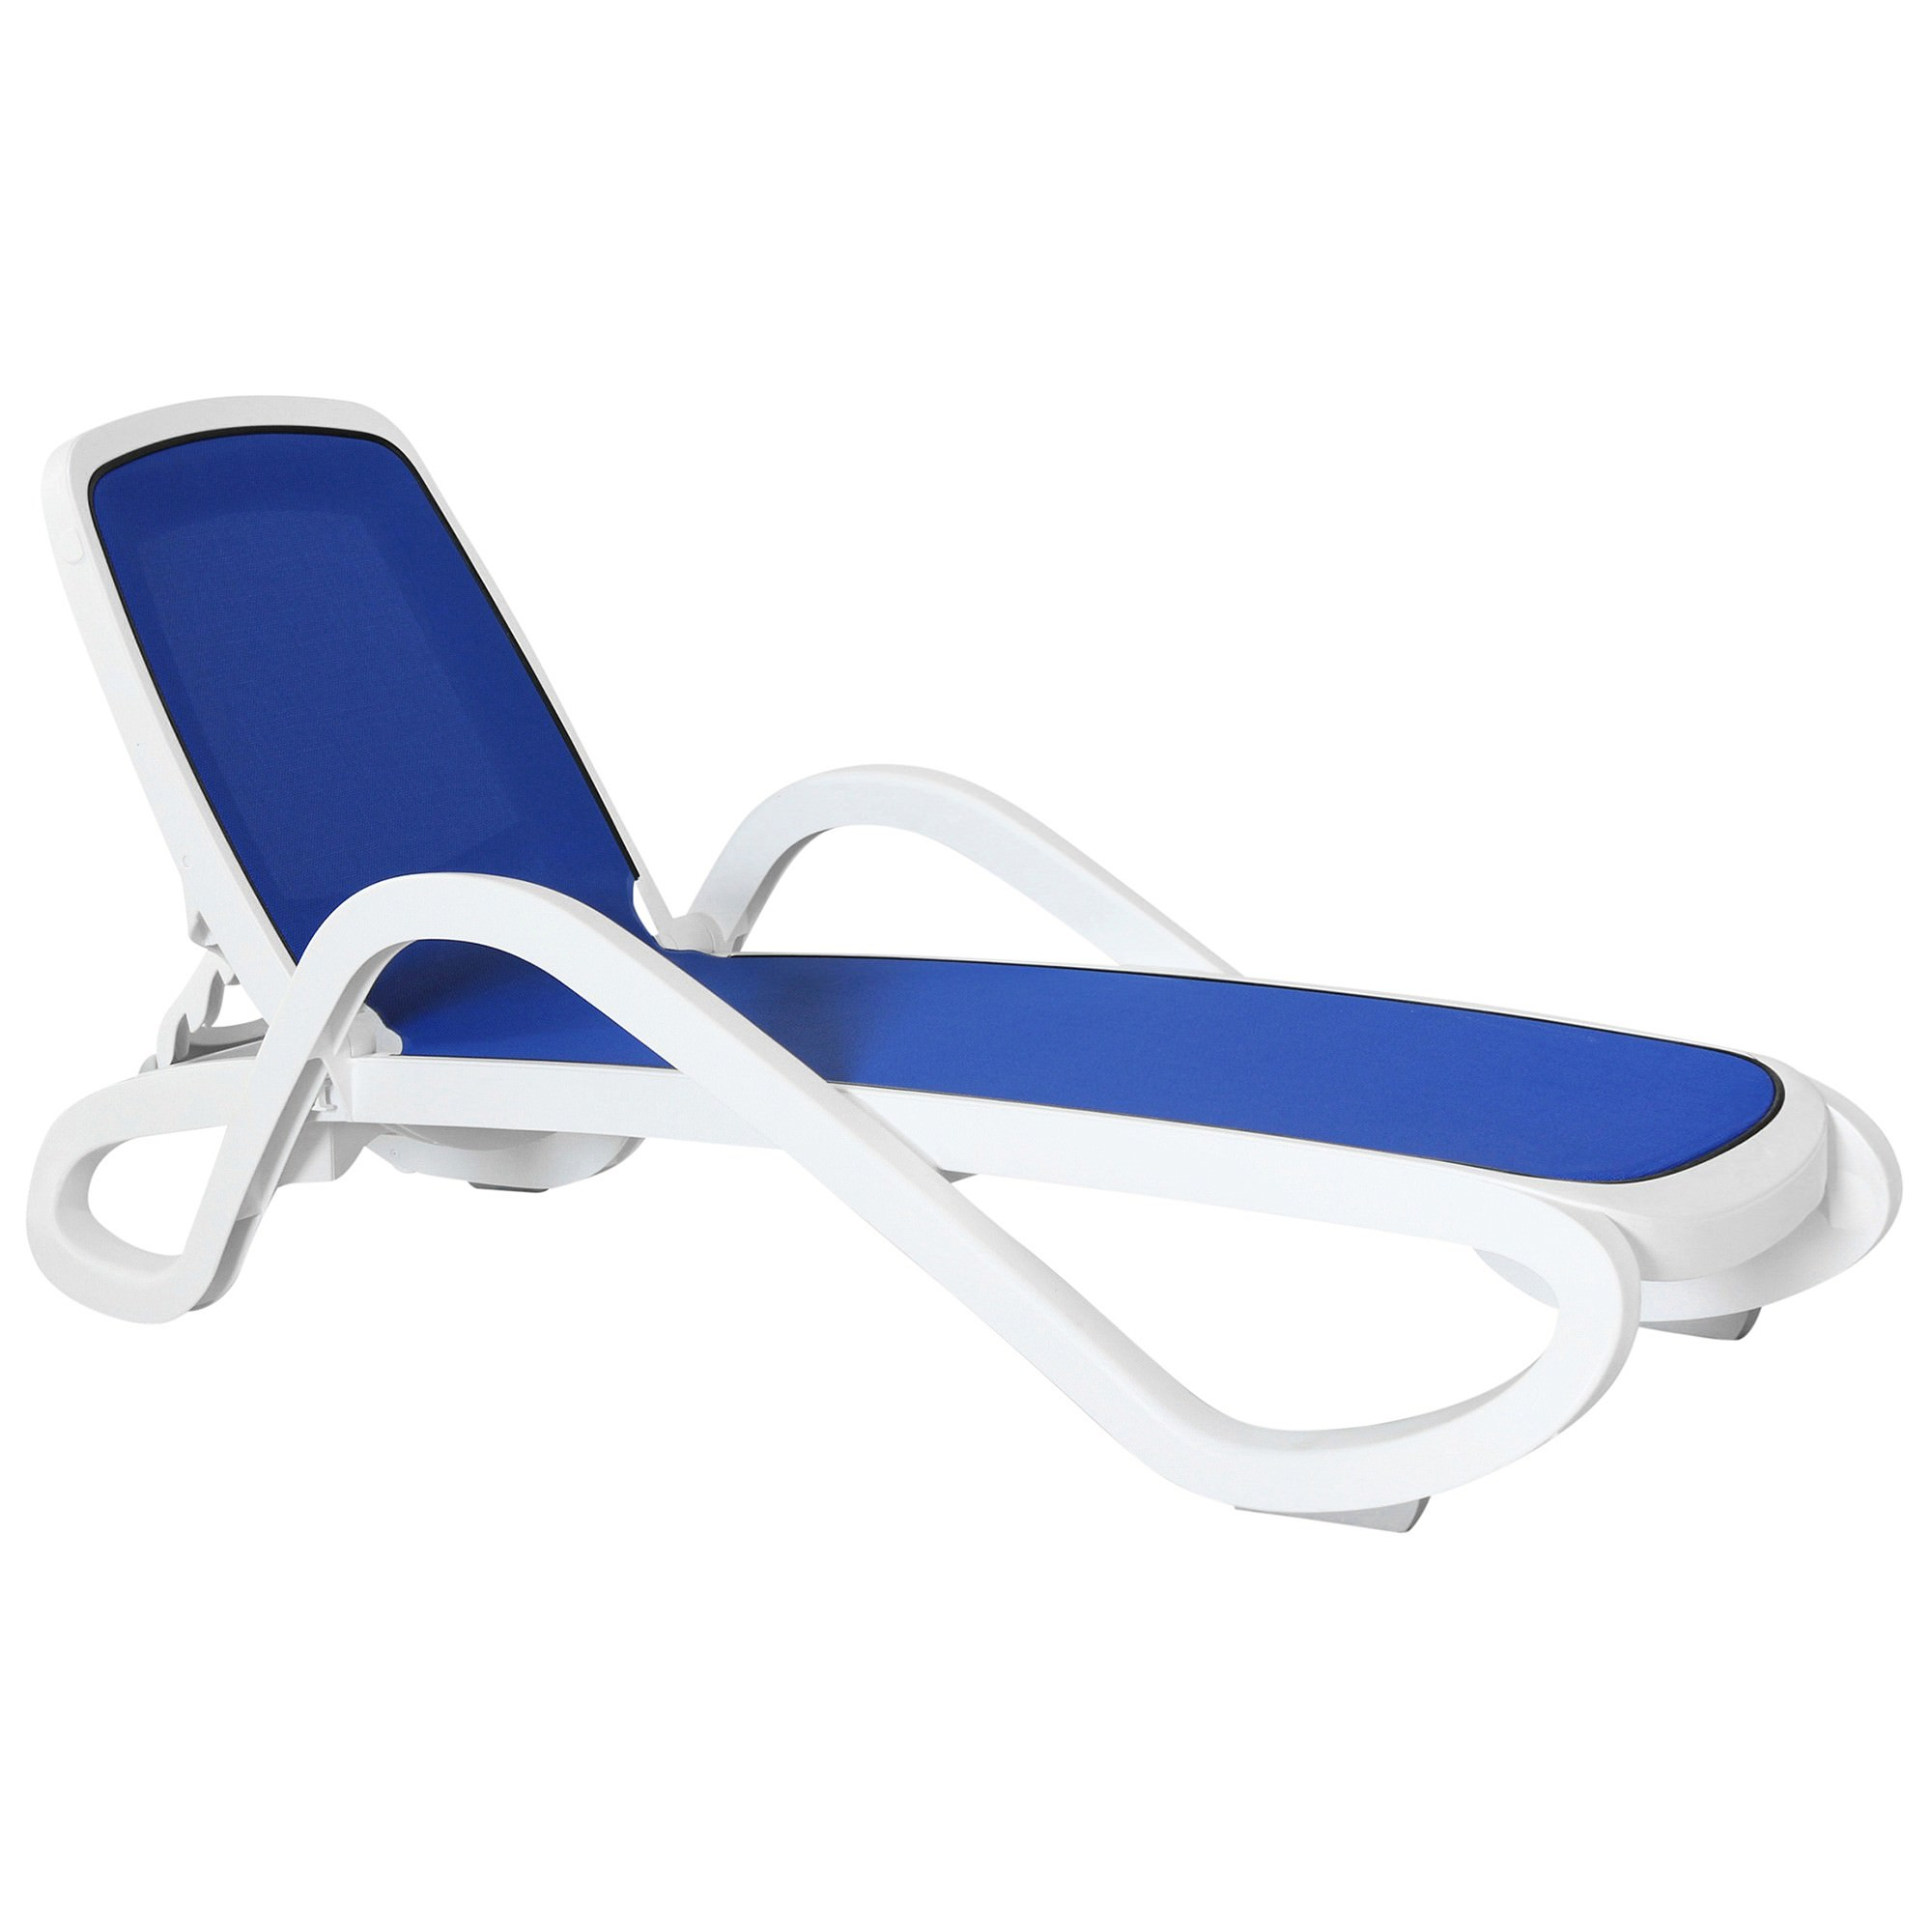 Barbados Italian Made Commercial Grade Stackable Sun Lounge, Blue / White